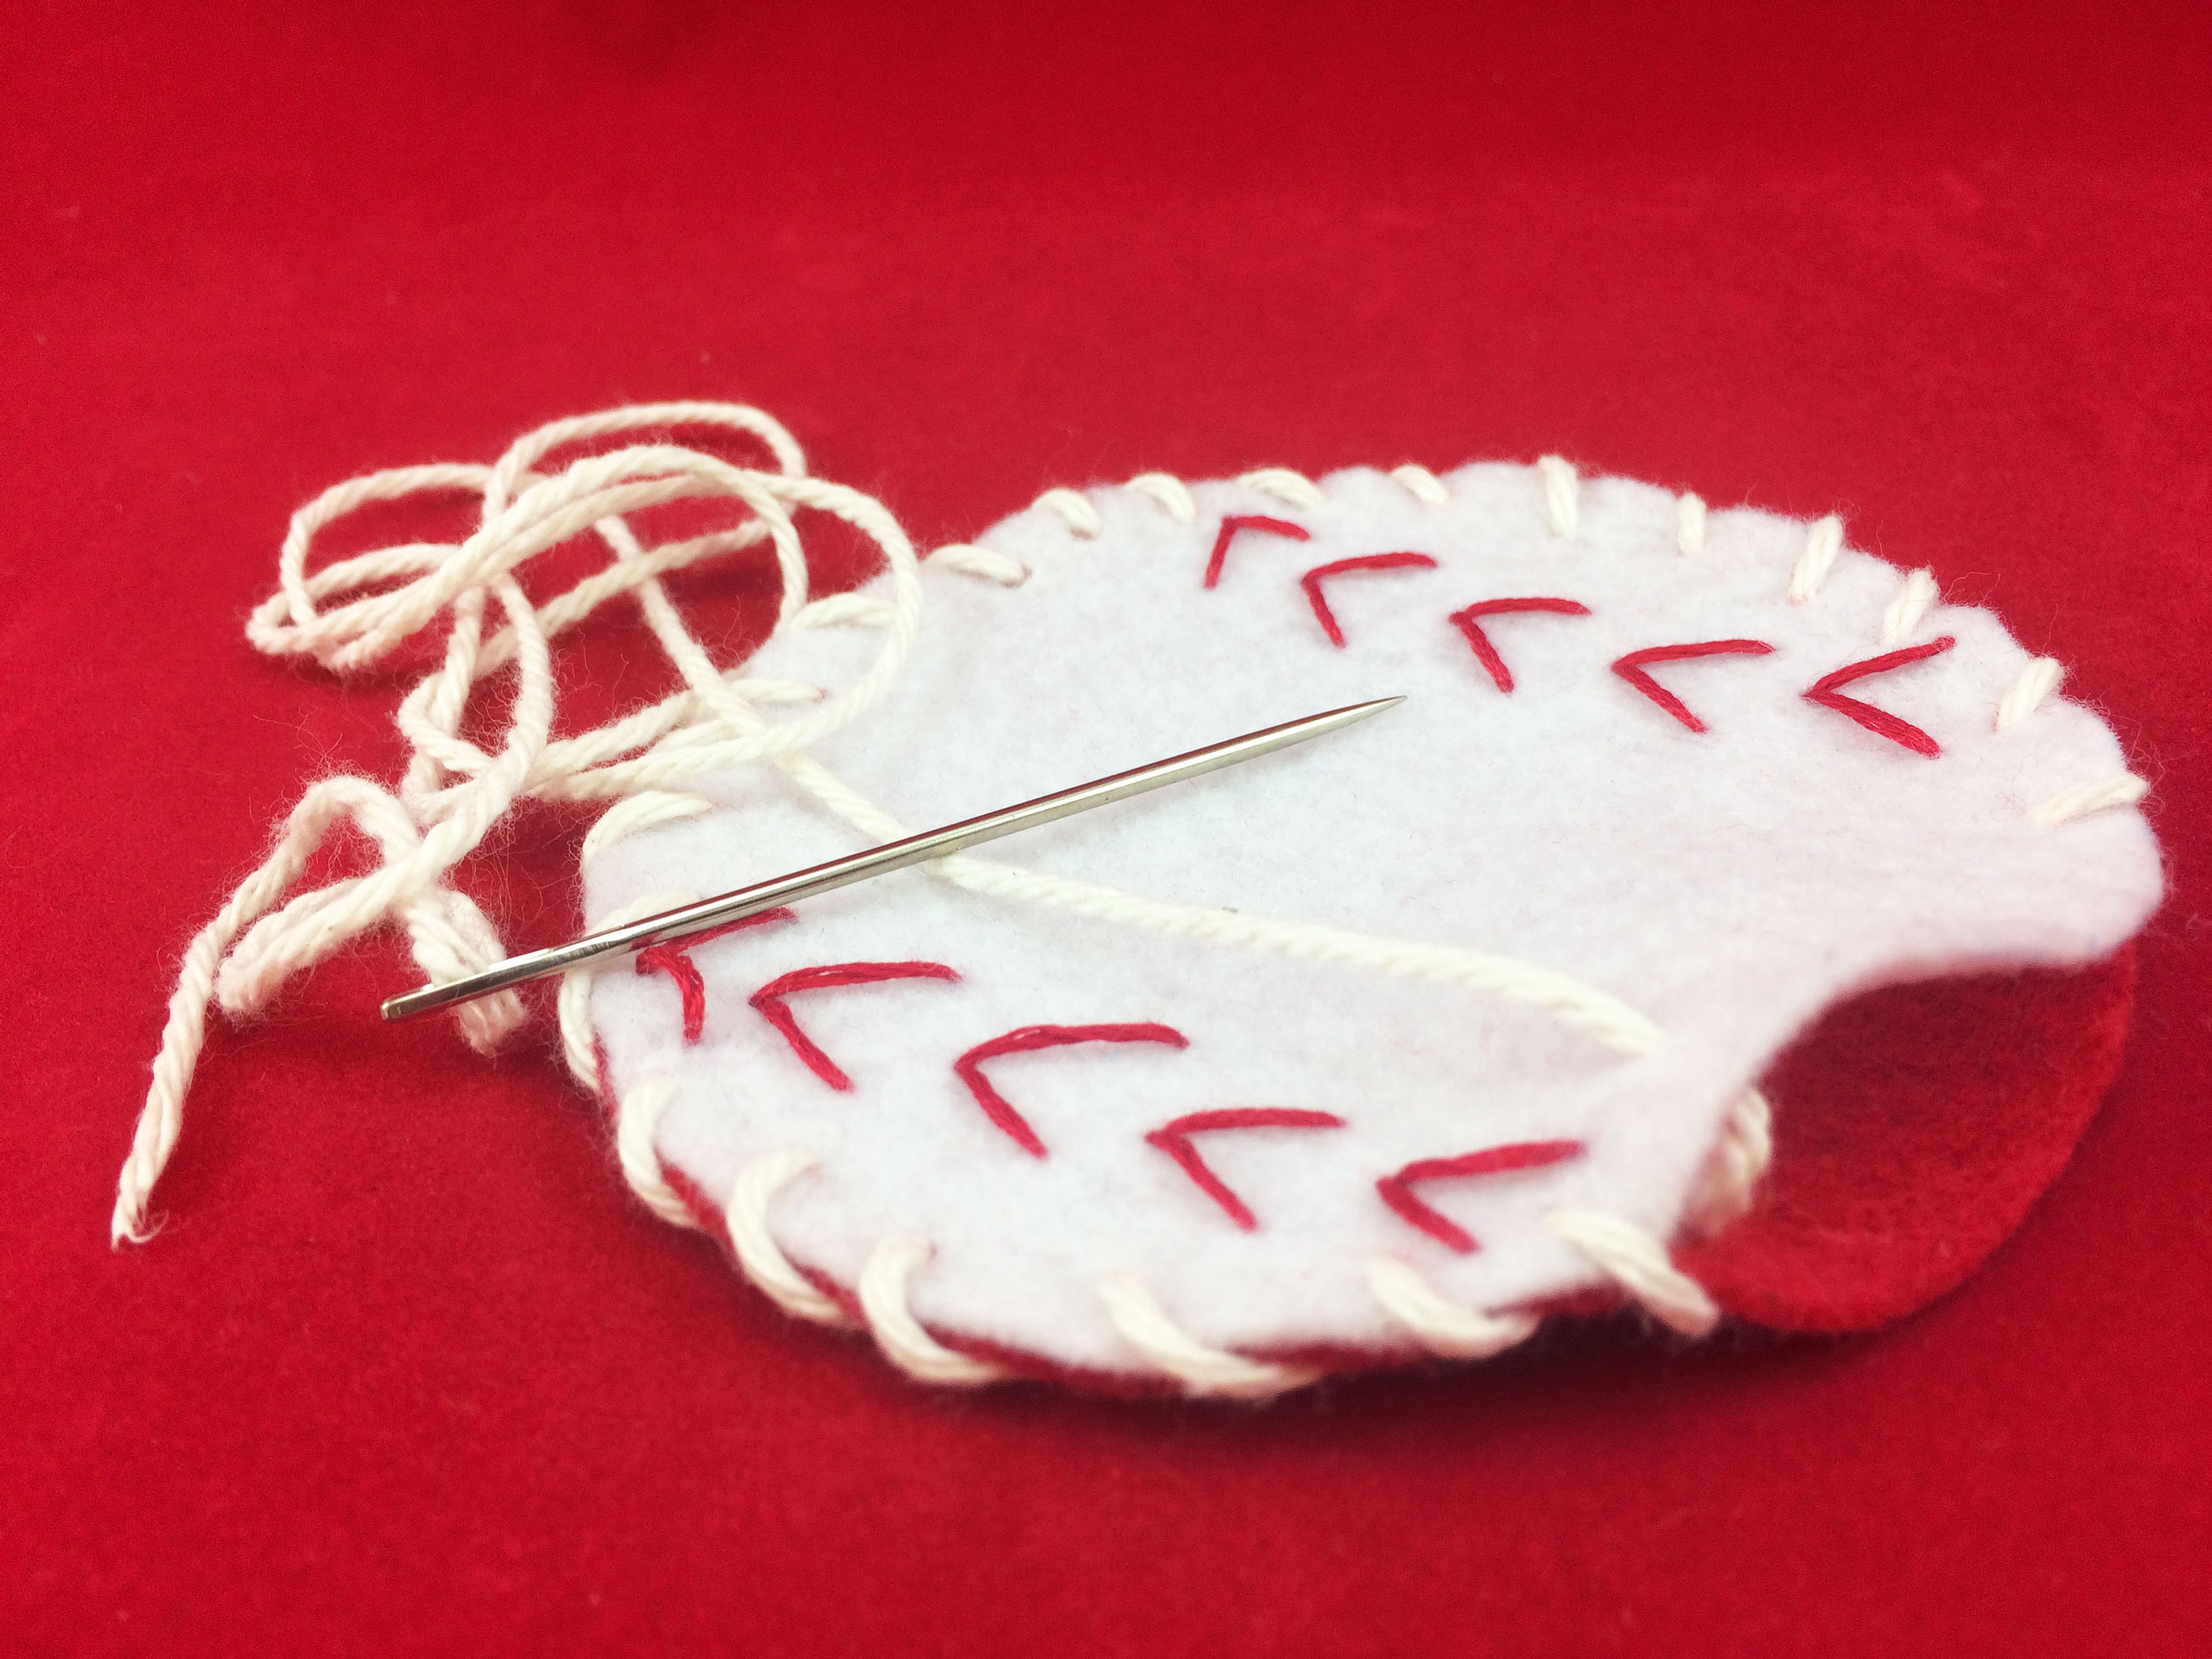 Red felt circle sewn to the back of white baseball with white string. | OrnamentShop.com